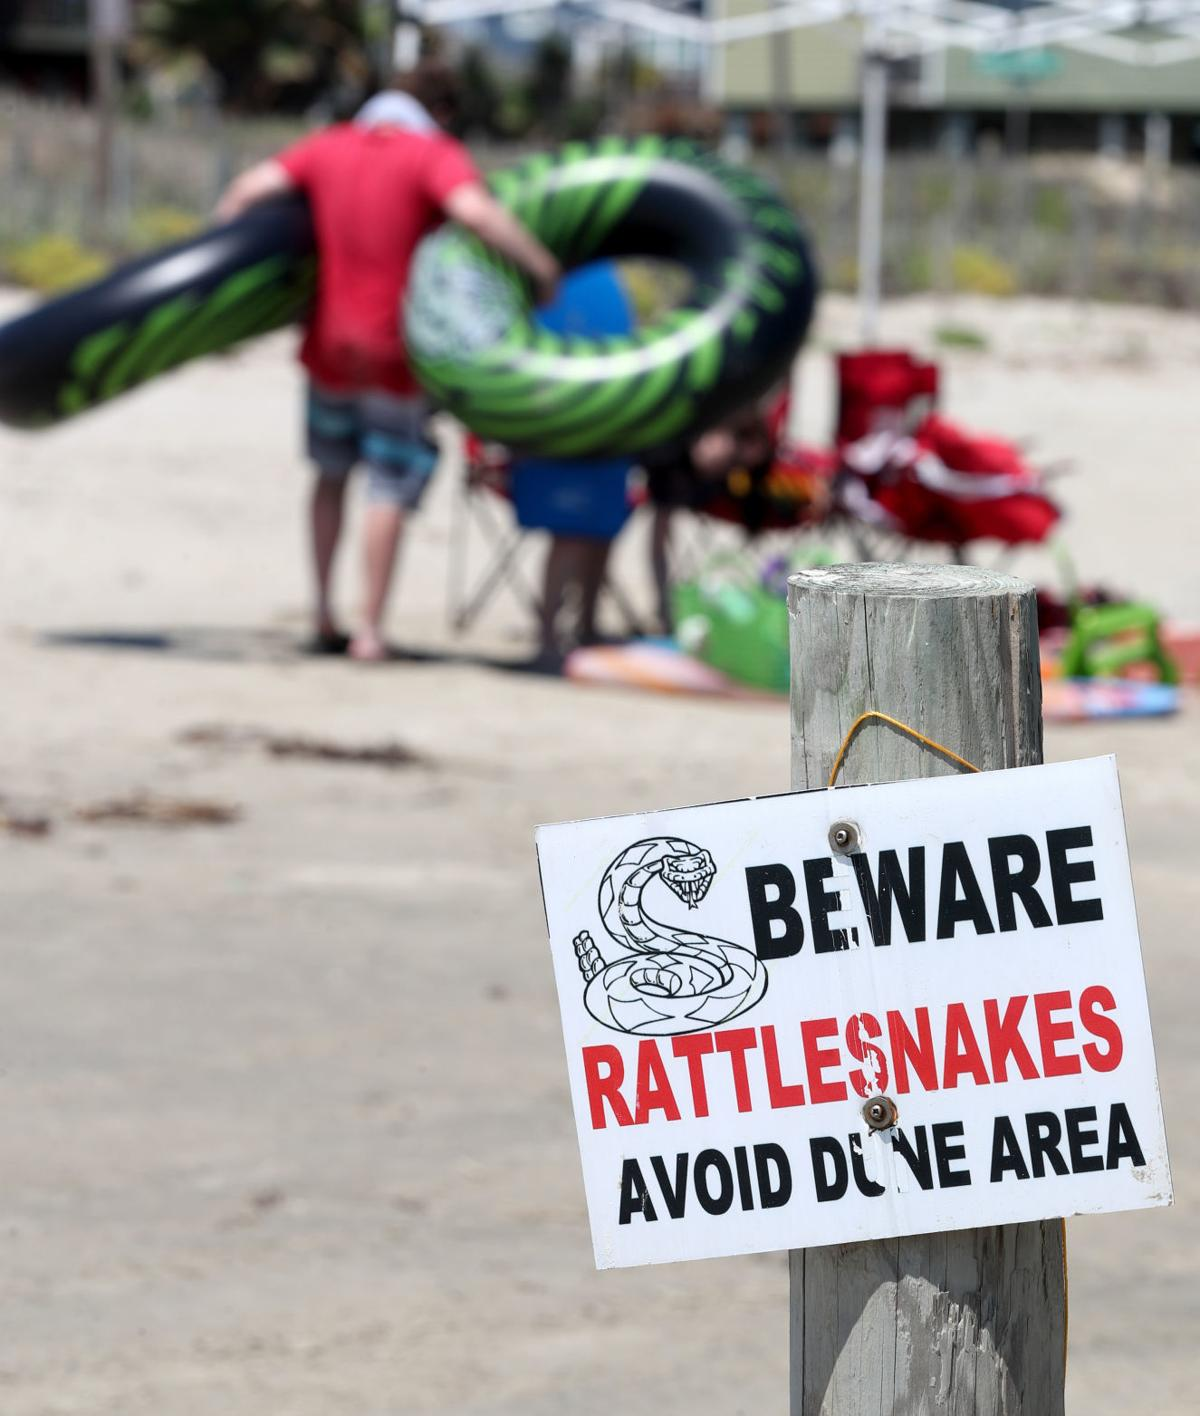 Rattlesnake precautions, treatments